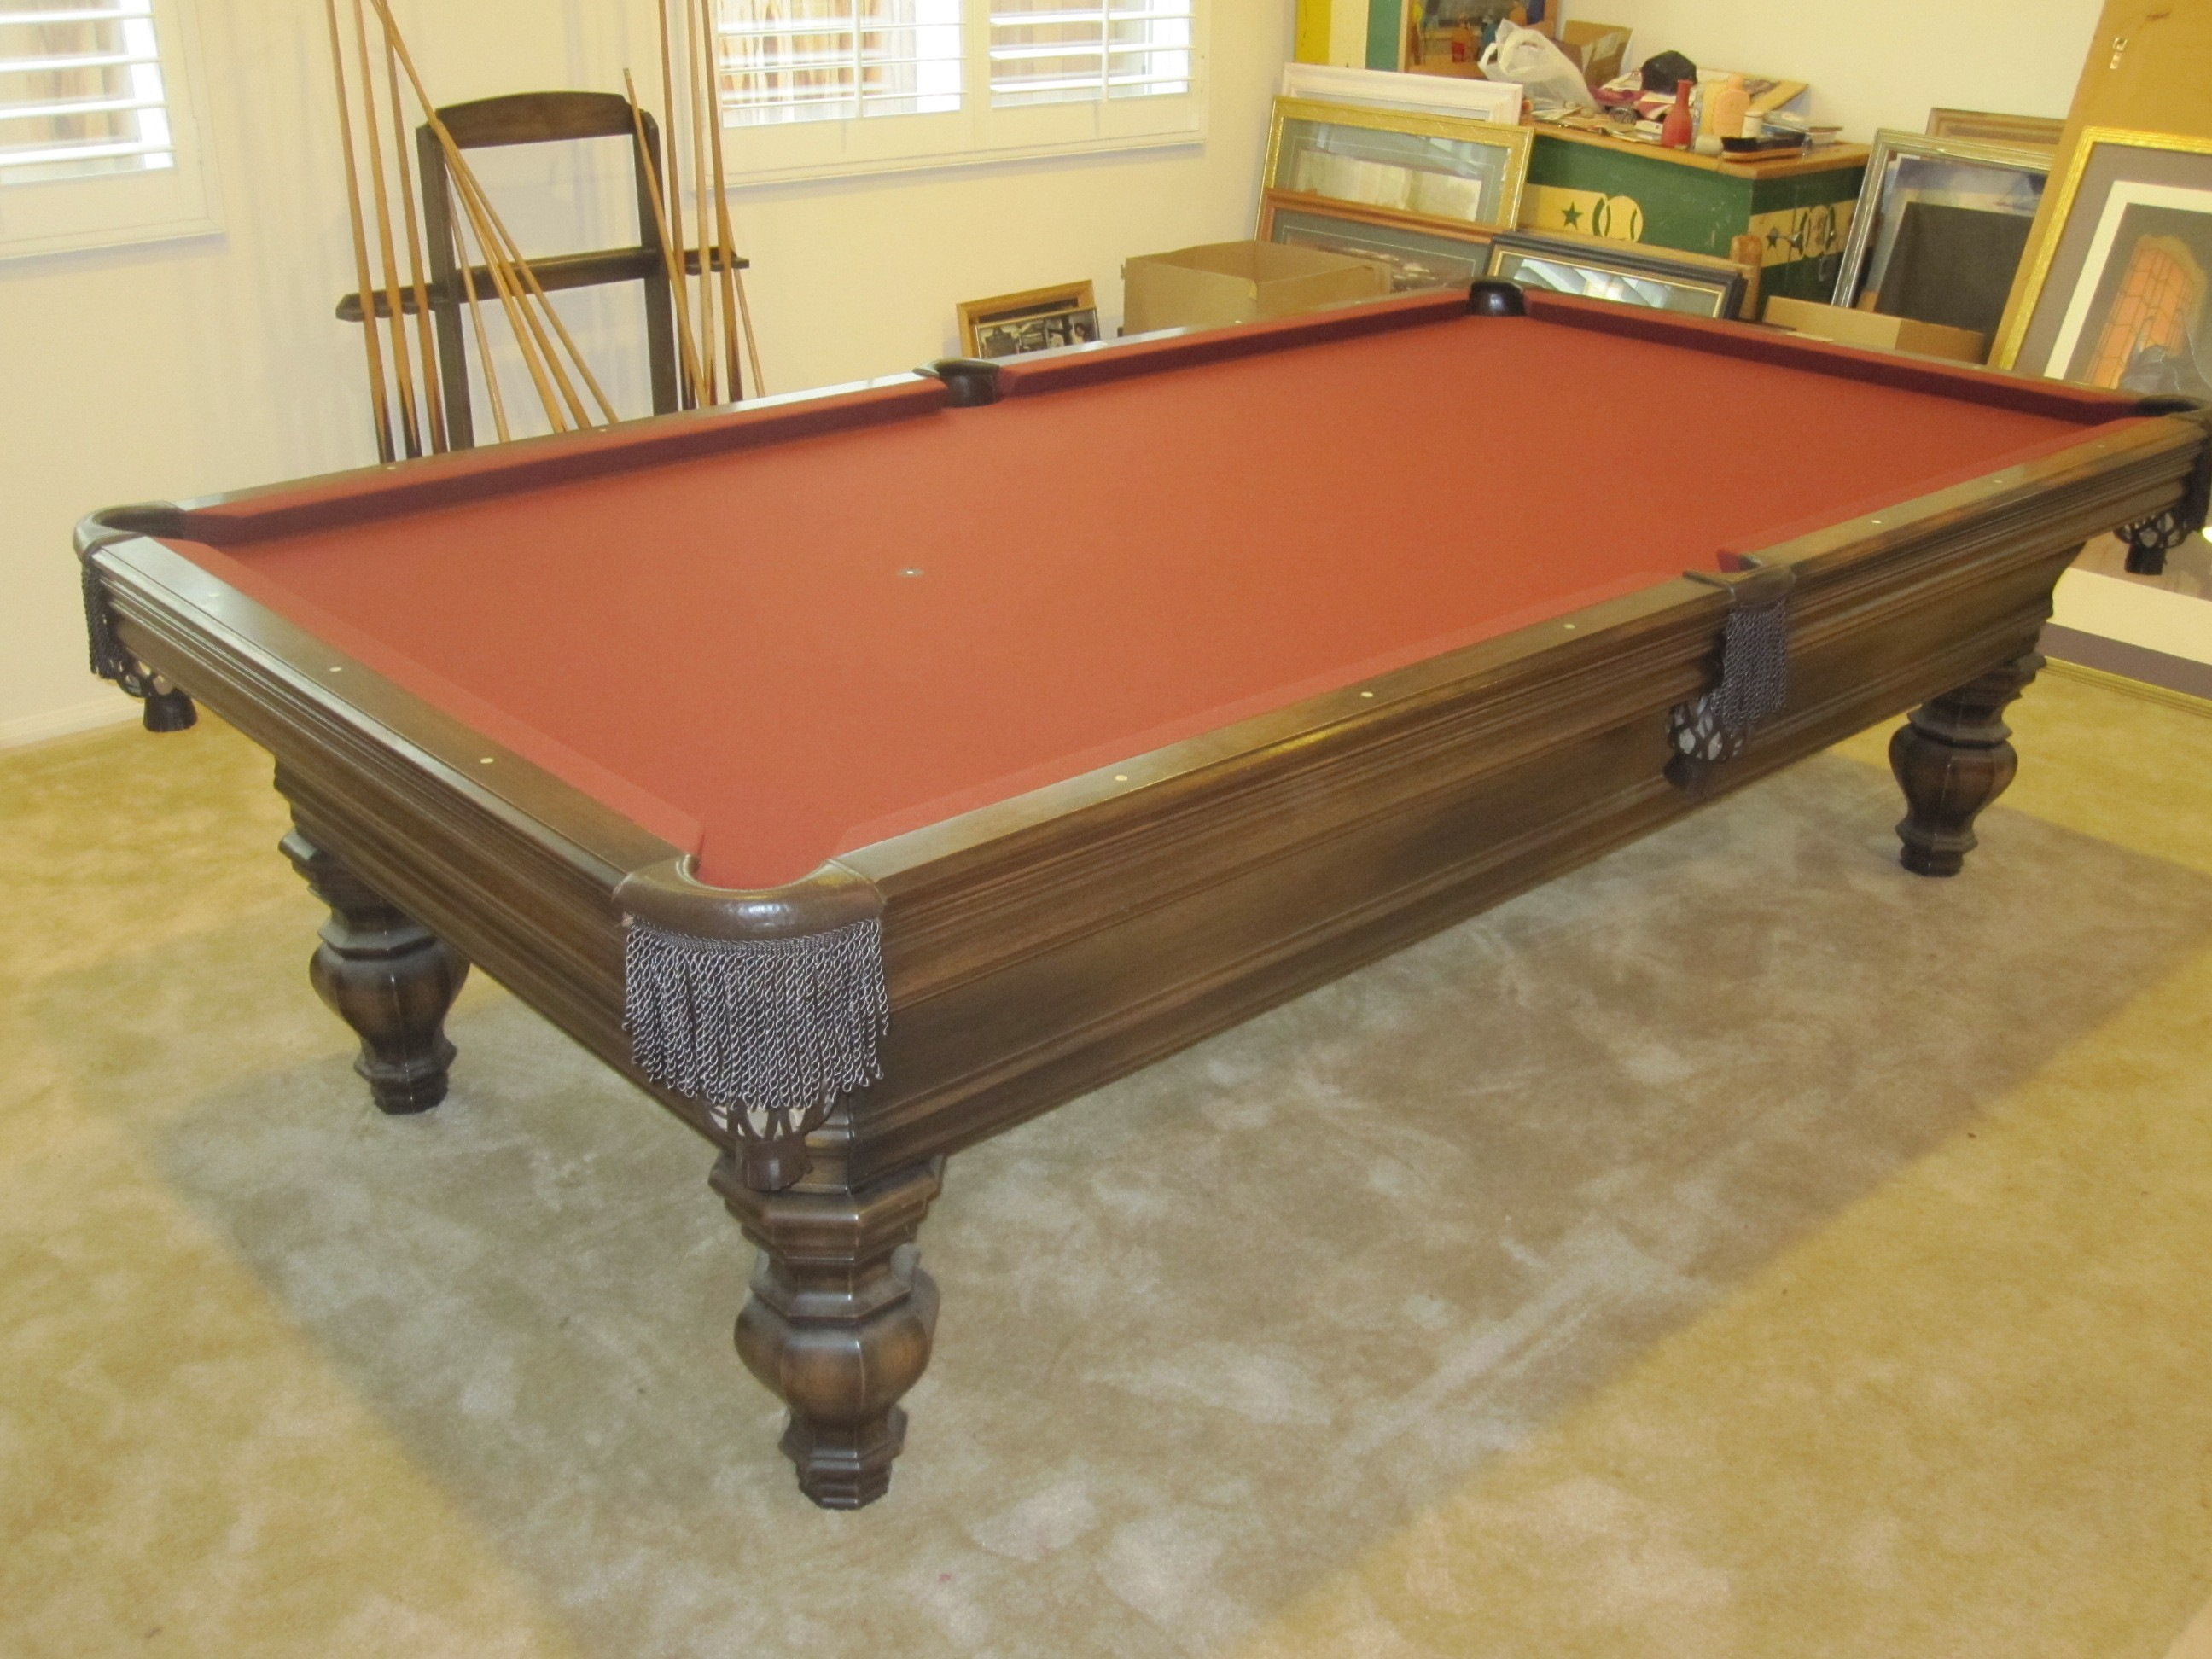 Incroyable ... Amazing Do Pool Tables Come Apart #22   Renaissance Pool Table Re Do ...